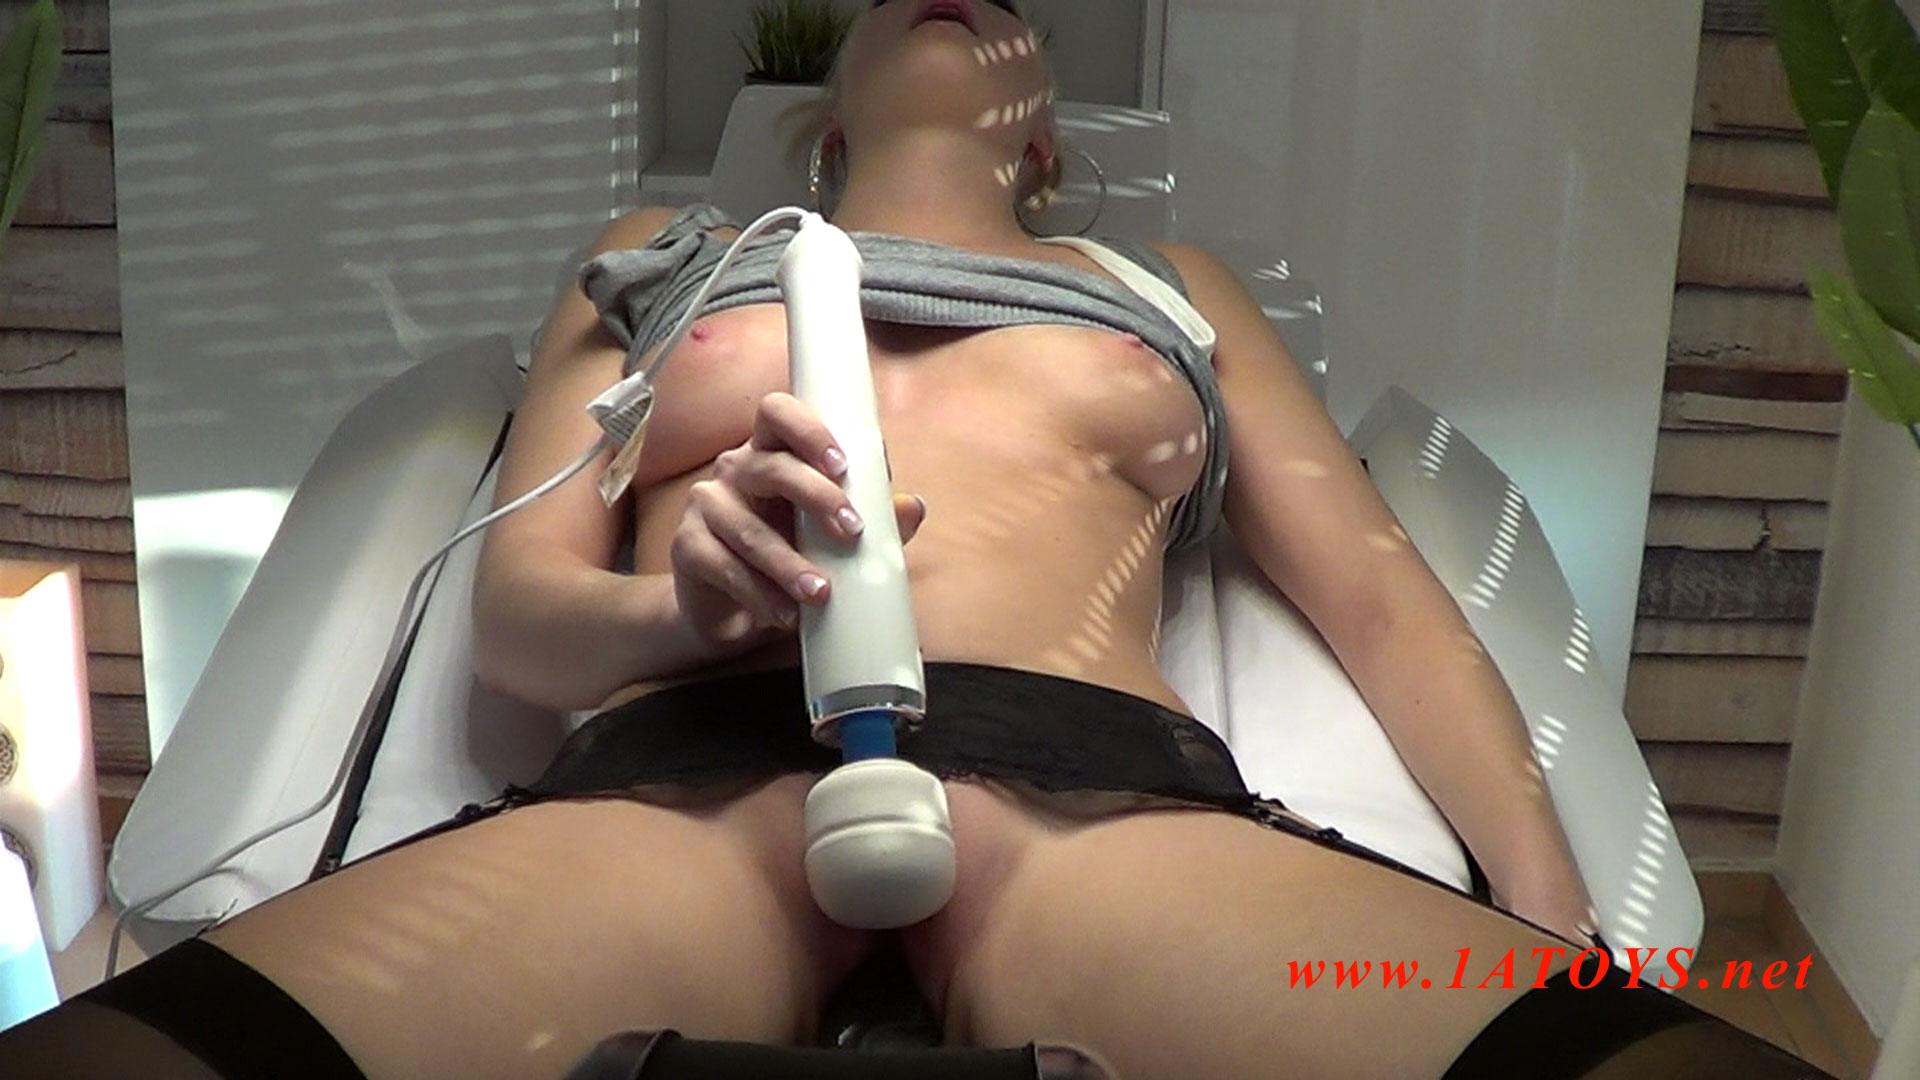 Janetpeters Free Streaming Videos Of Teen Sex-welcome To The